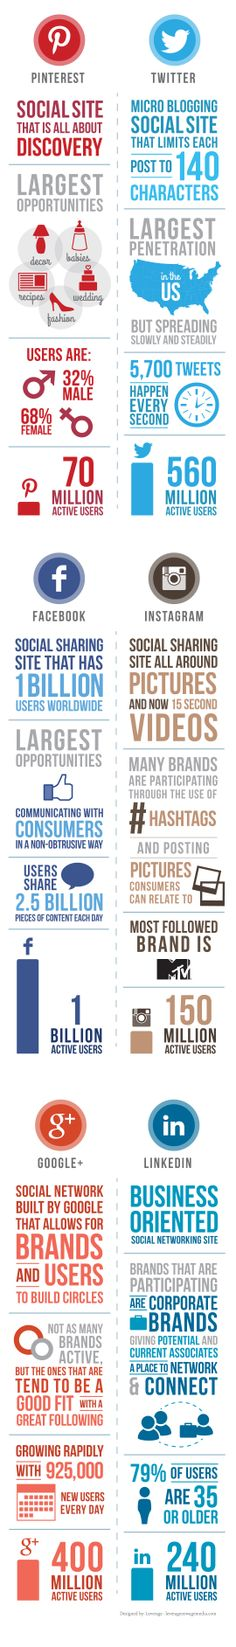 How and where to best SHARE YOUR IDEAS on the INTERNET. #DdO:) - Social Media Comparison Infographic